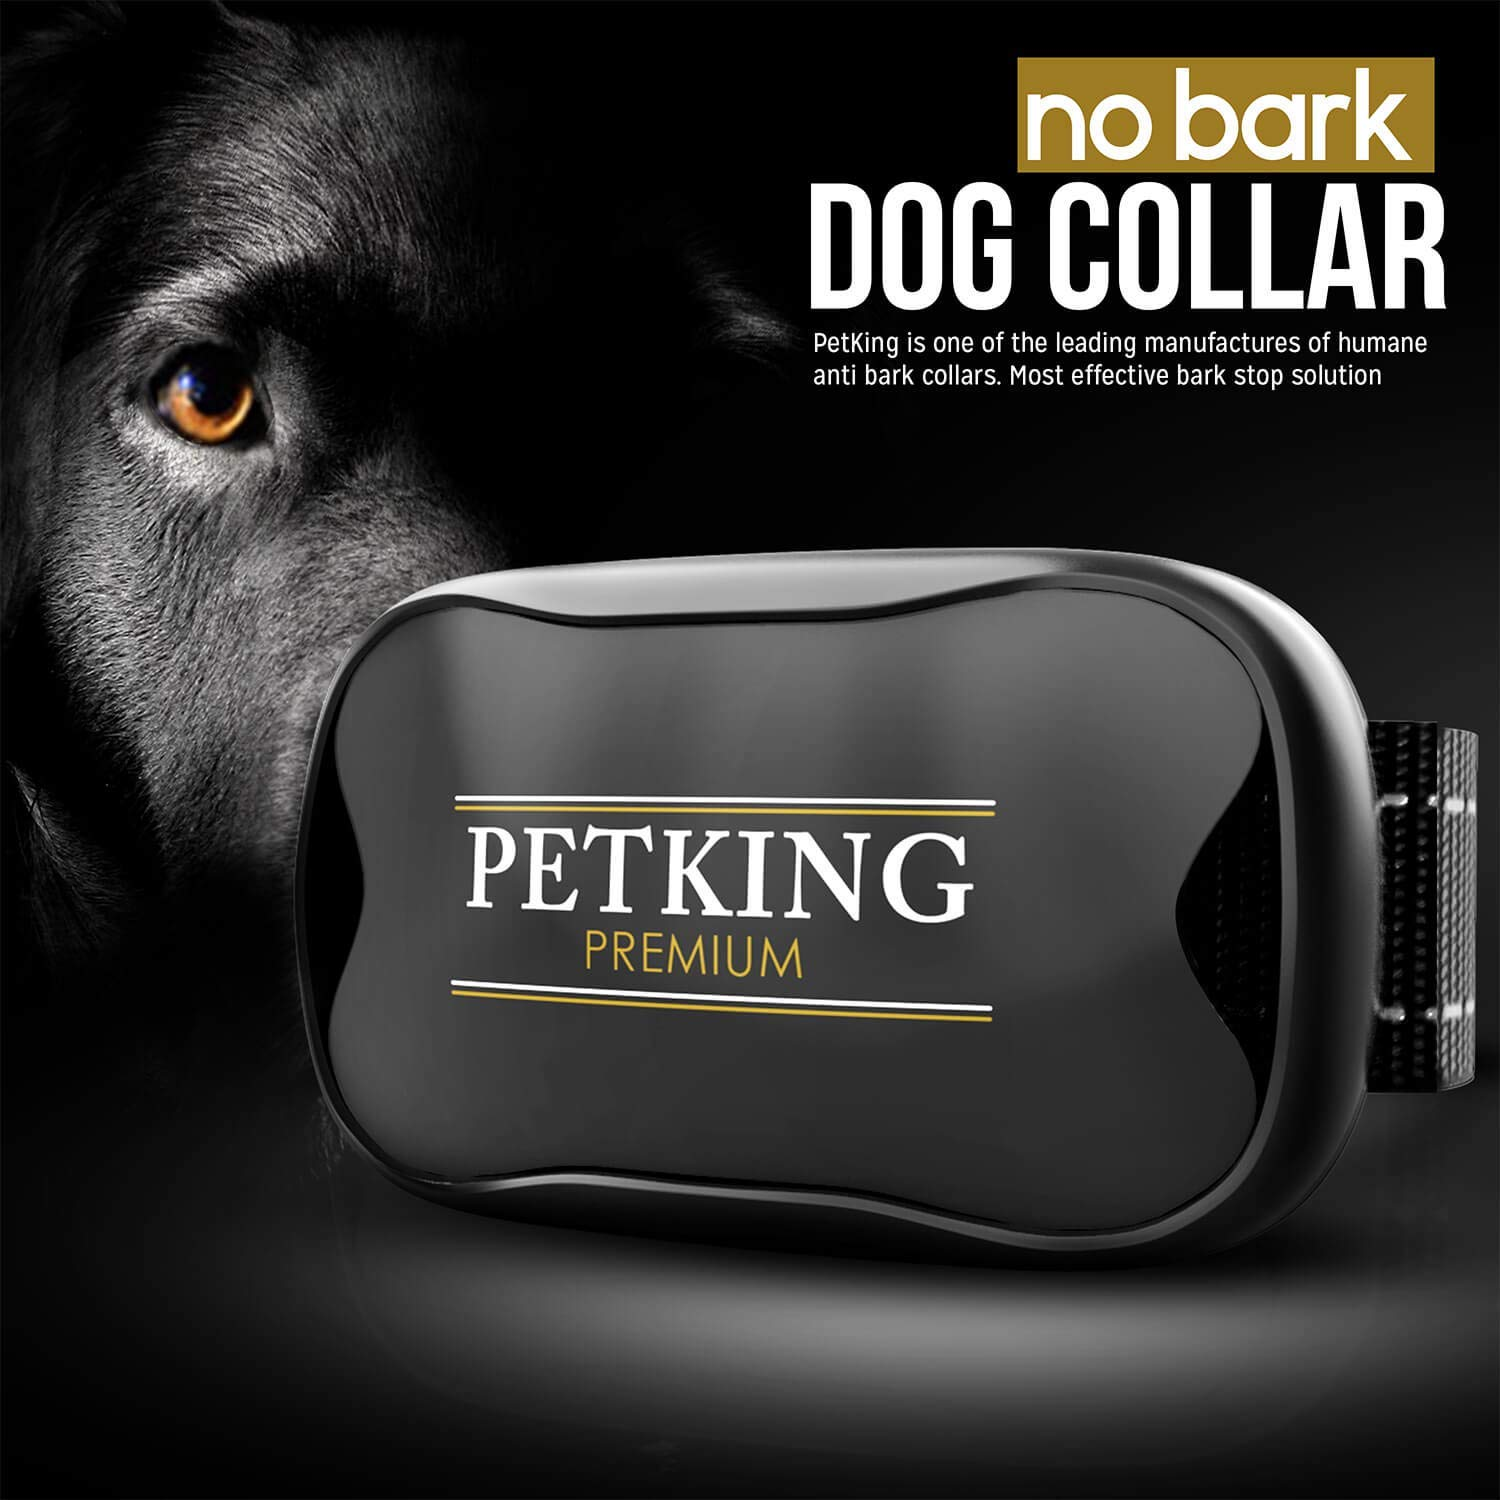 PETKING - Effective Anti Bark Dog Collar | Safe & Hummane No Barking Control Device to Stop Small Medium & Large Breeds | No Shock Spray or Aids | Best 2018 Anti-Barking Sound and Vibration Technology by PetKing Premium